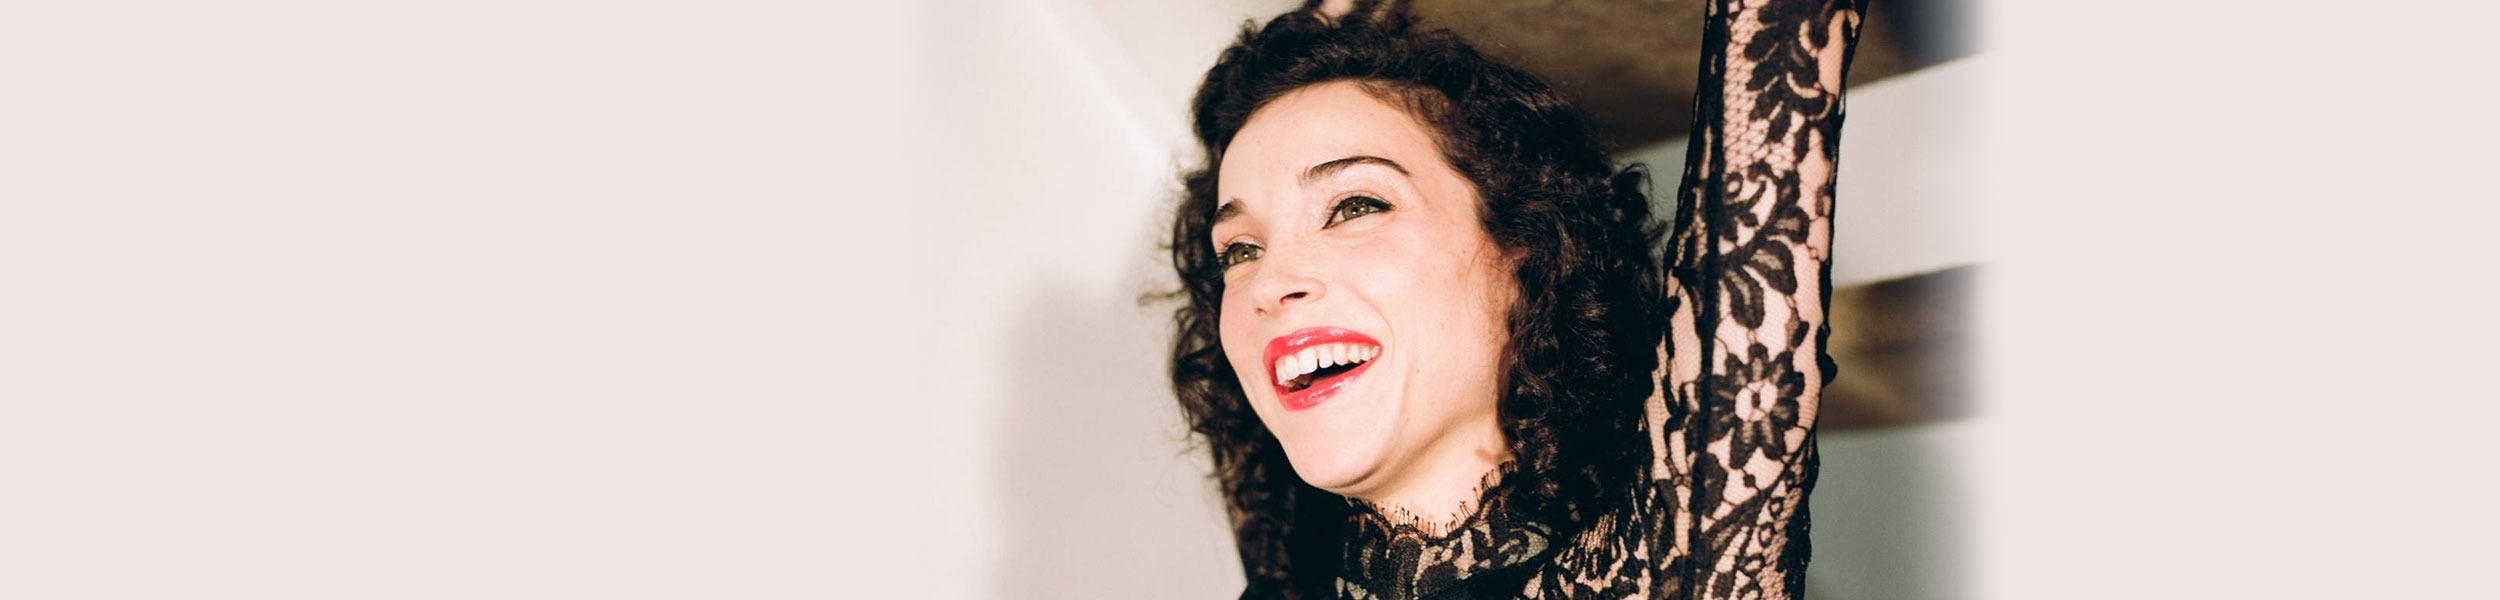 St. Vincent - St. Vincent To Release Two New Songs for Record Store Day